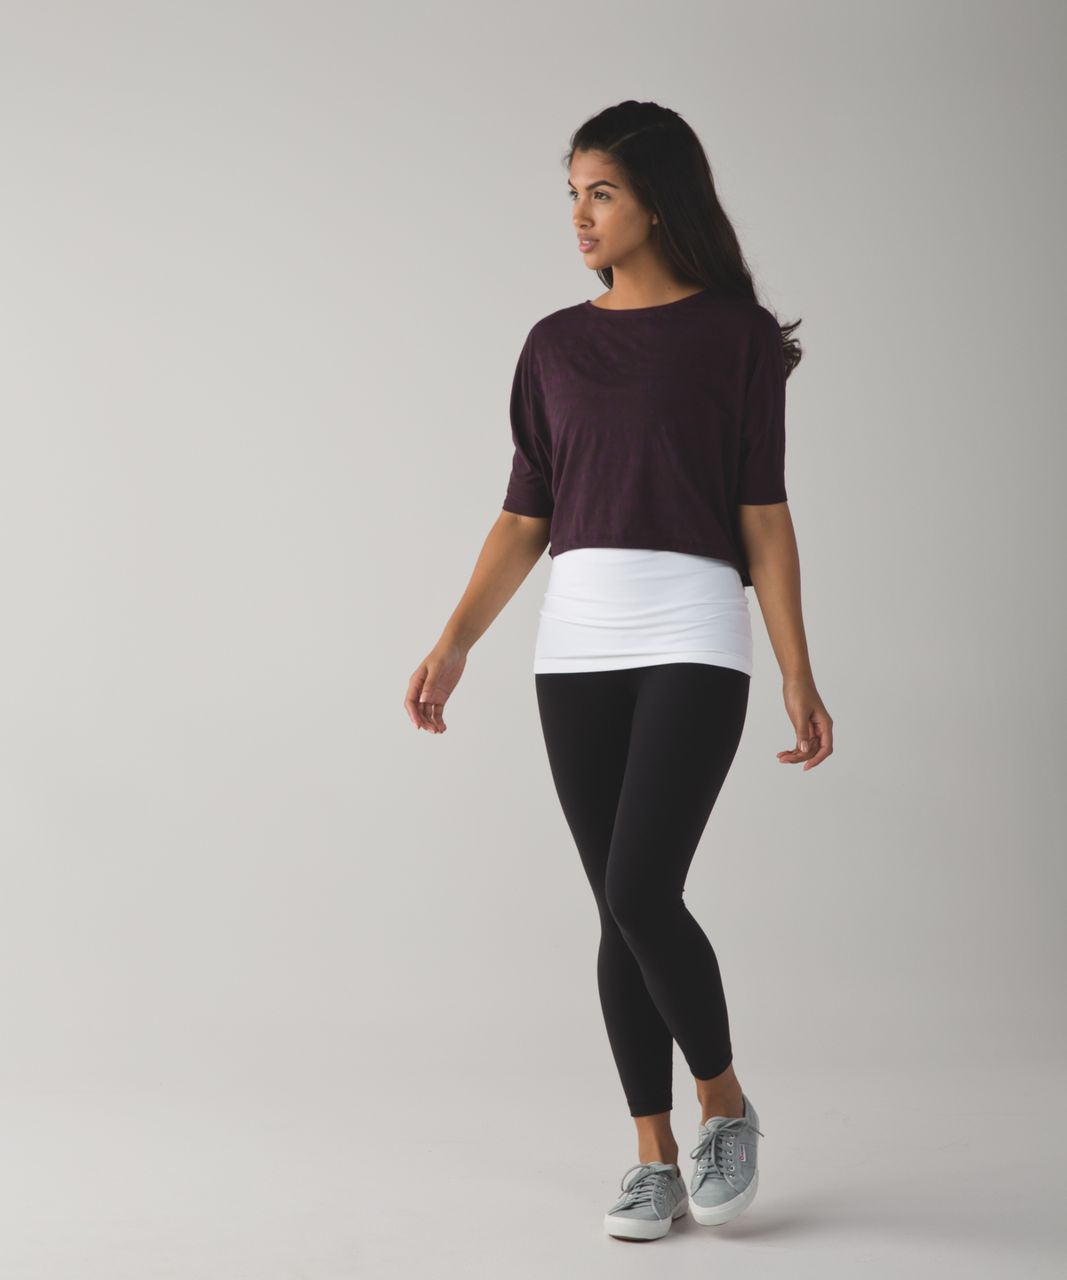 Lululemon Go Om Short Sleeve Tee - Mini Ghost Weave Burnout Black Cherry / Black Cherry